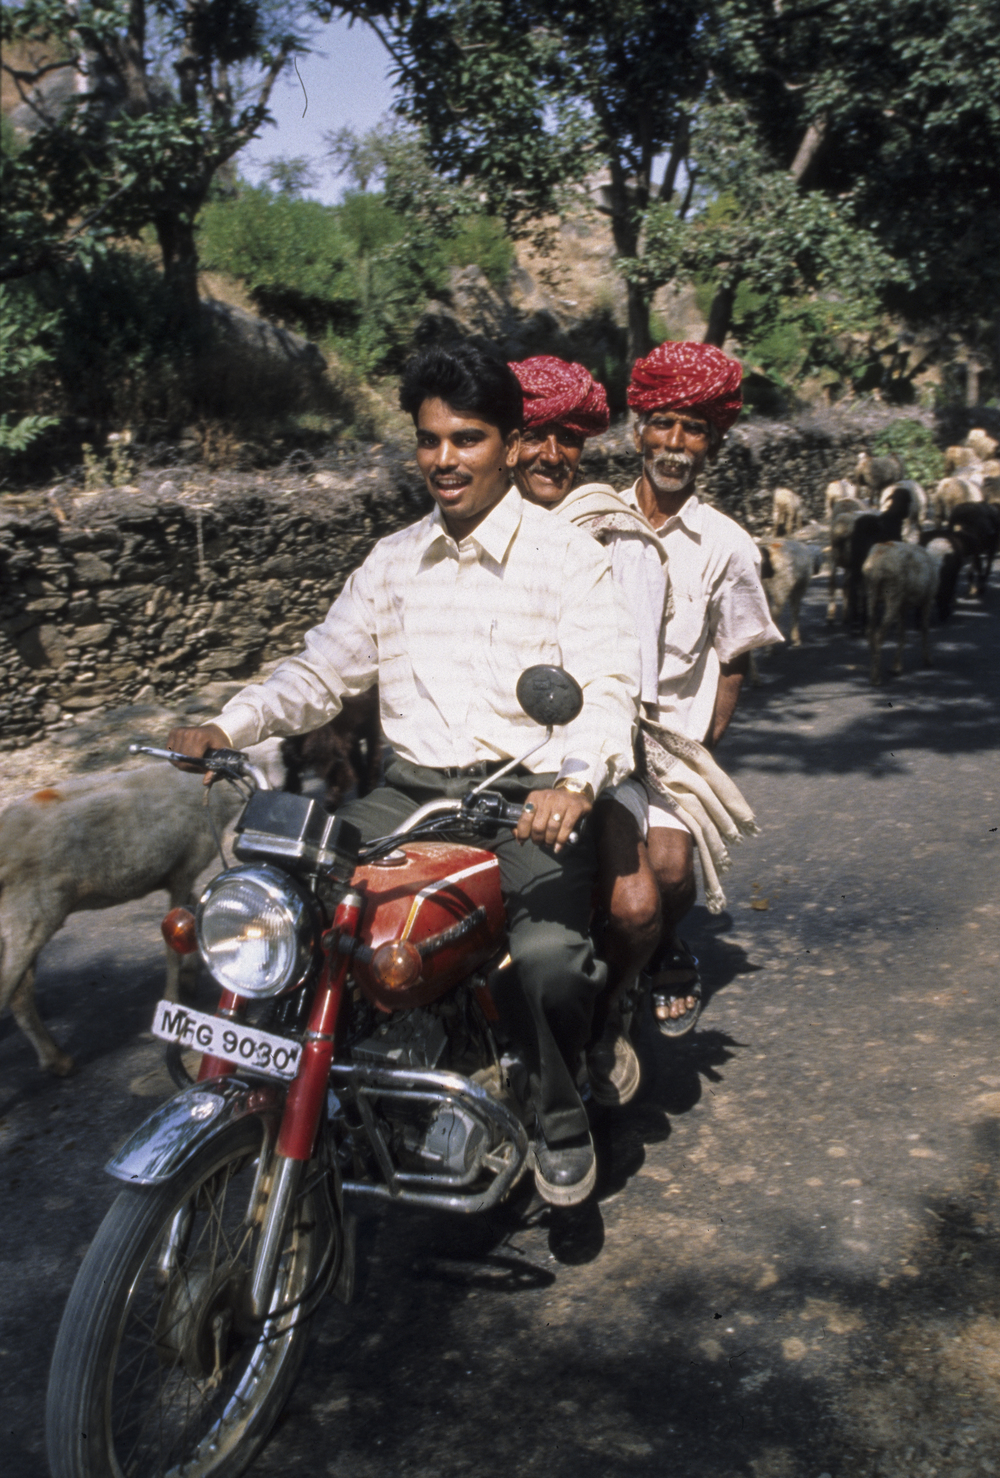 Motorized sheep herders